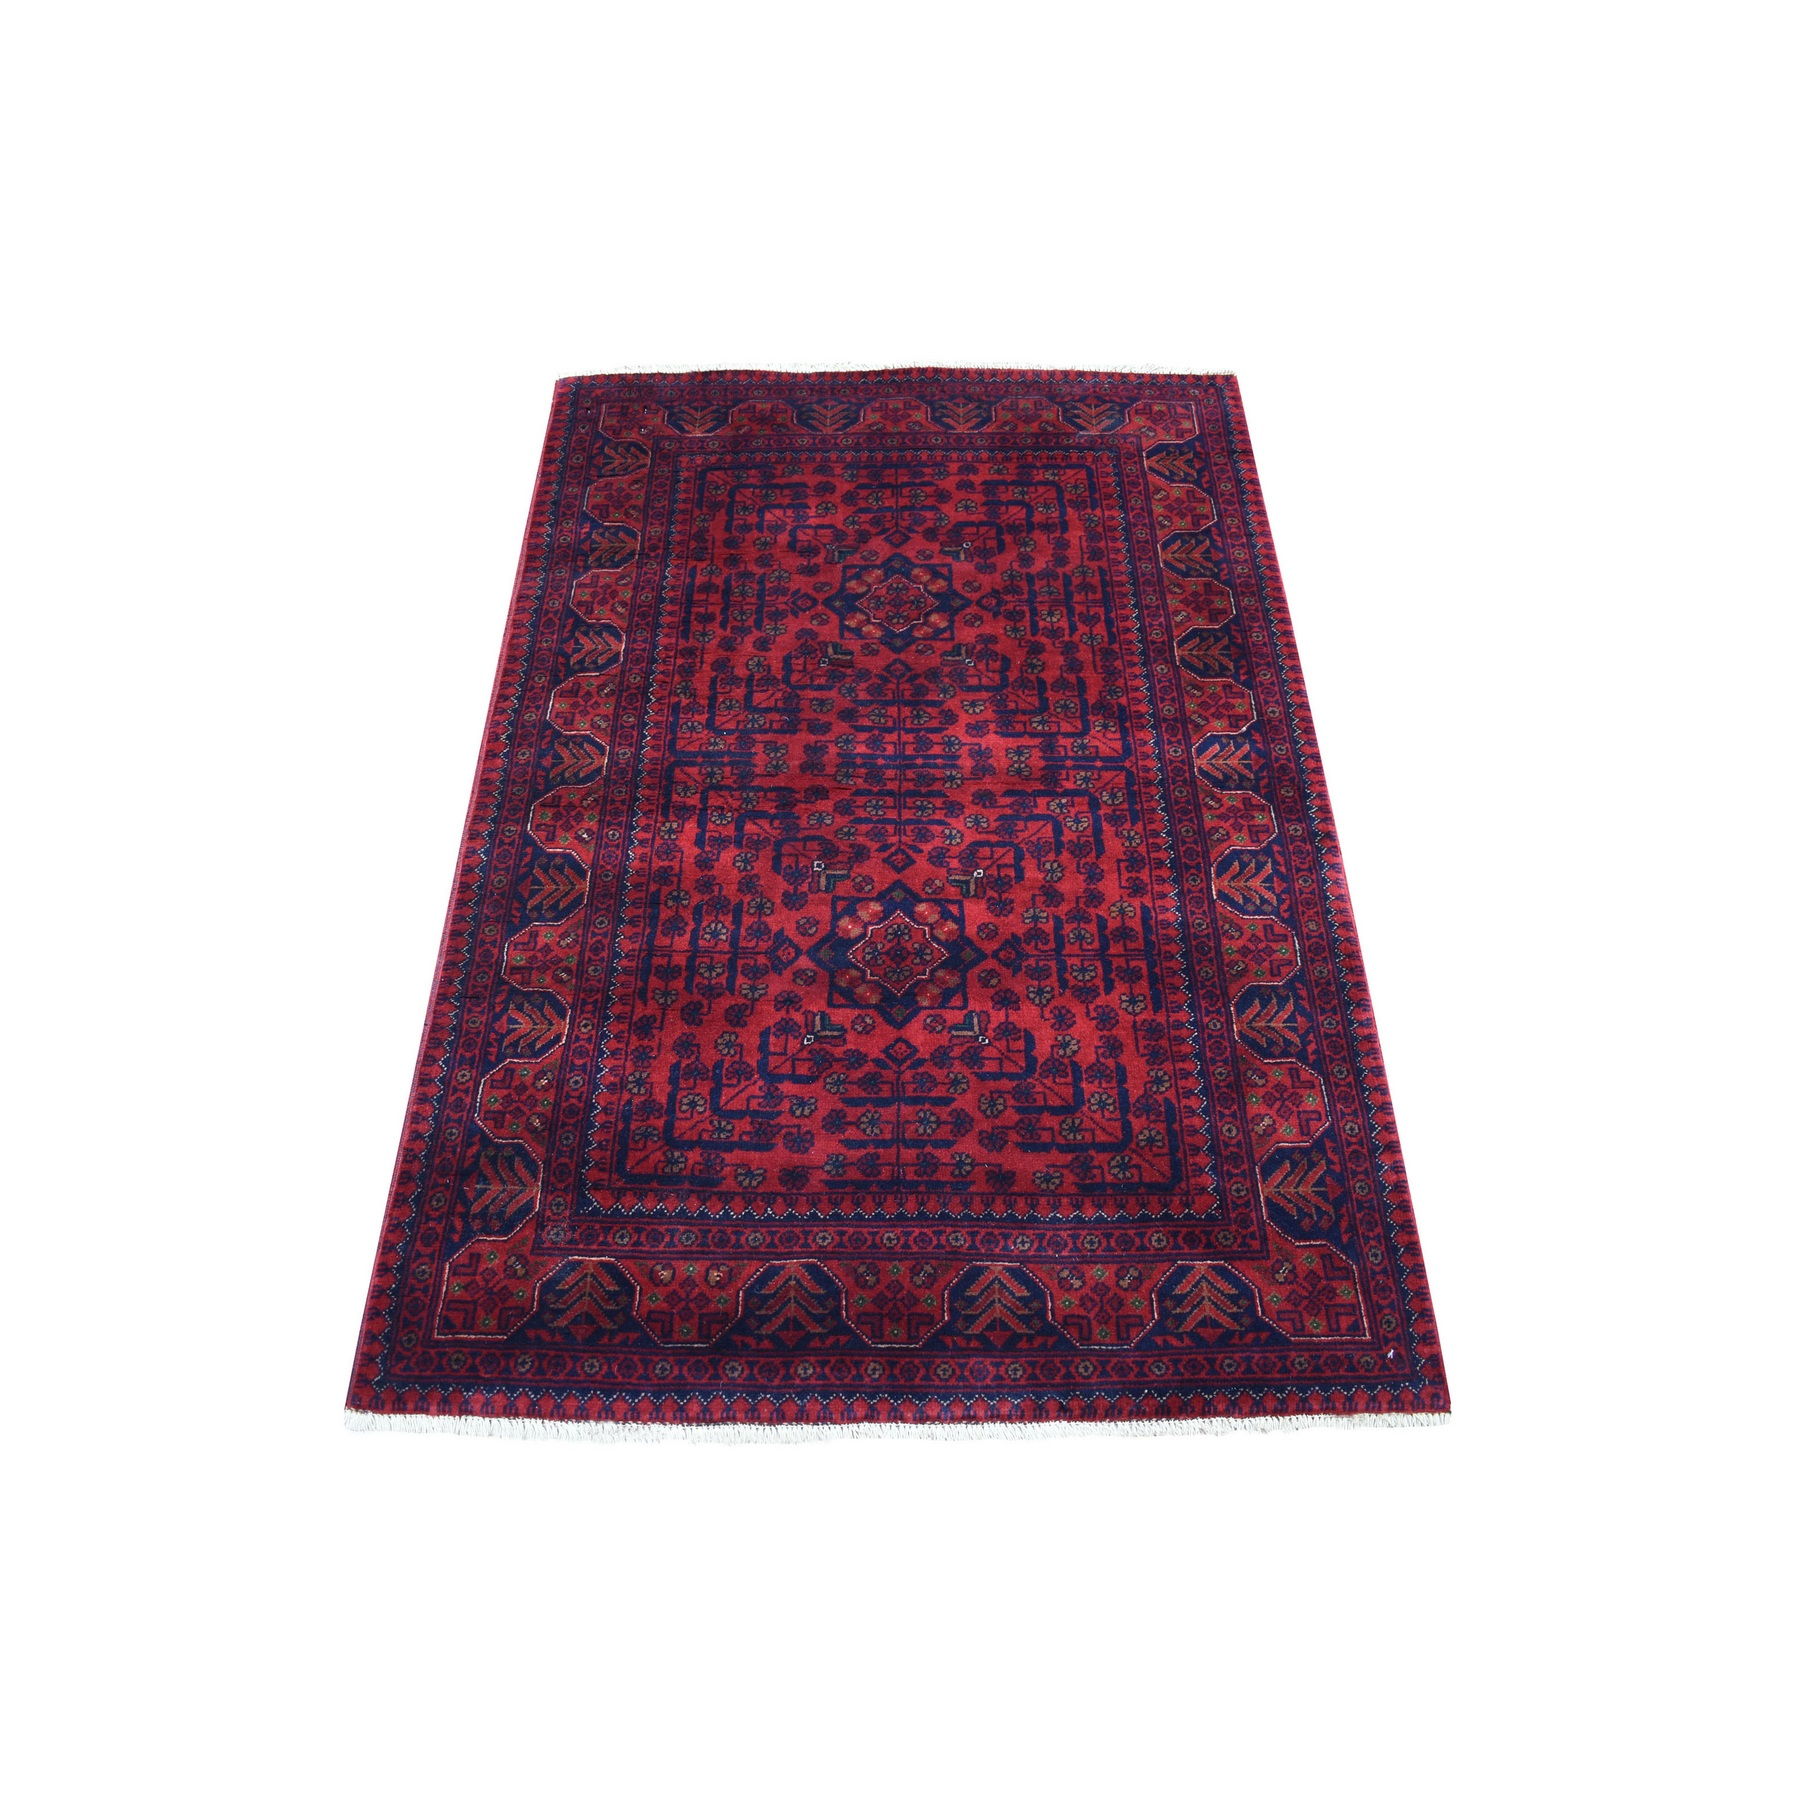 Nomadic And Village Collection Hand Knotted Red Rug No: 1136196